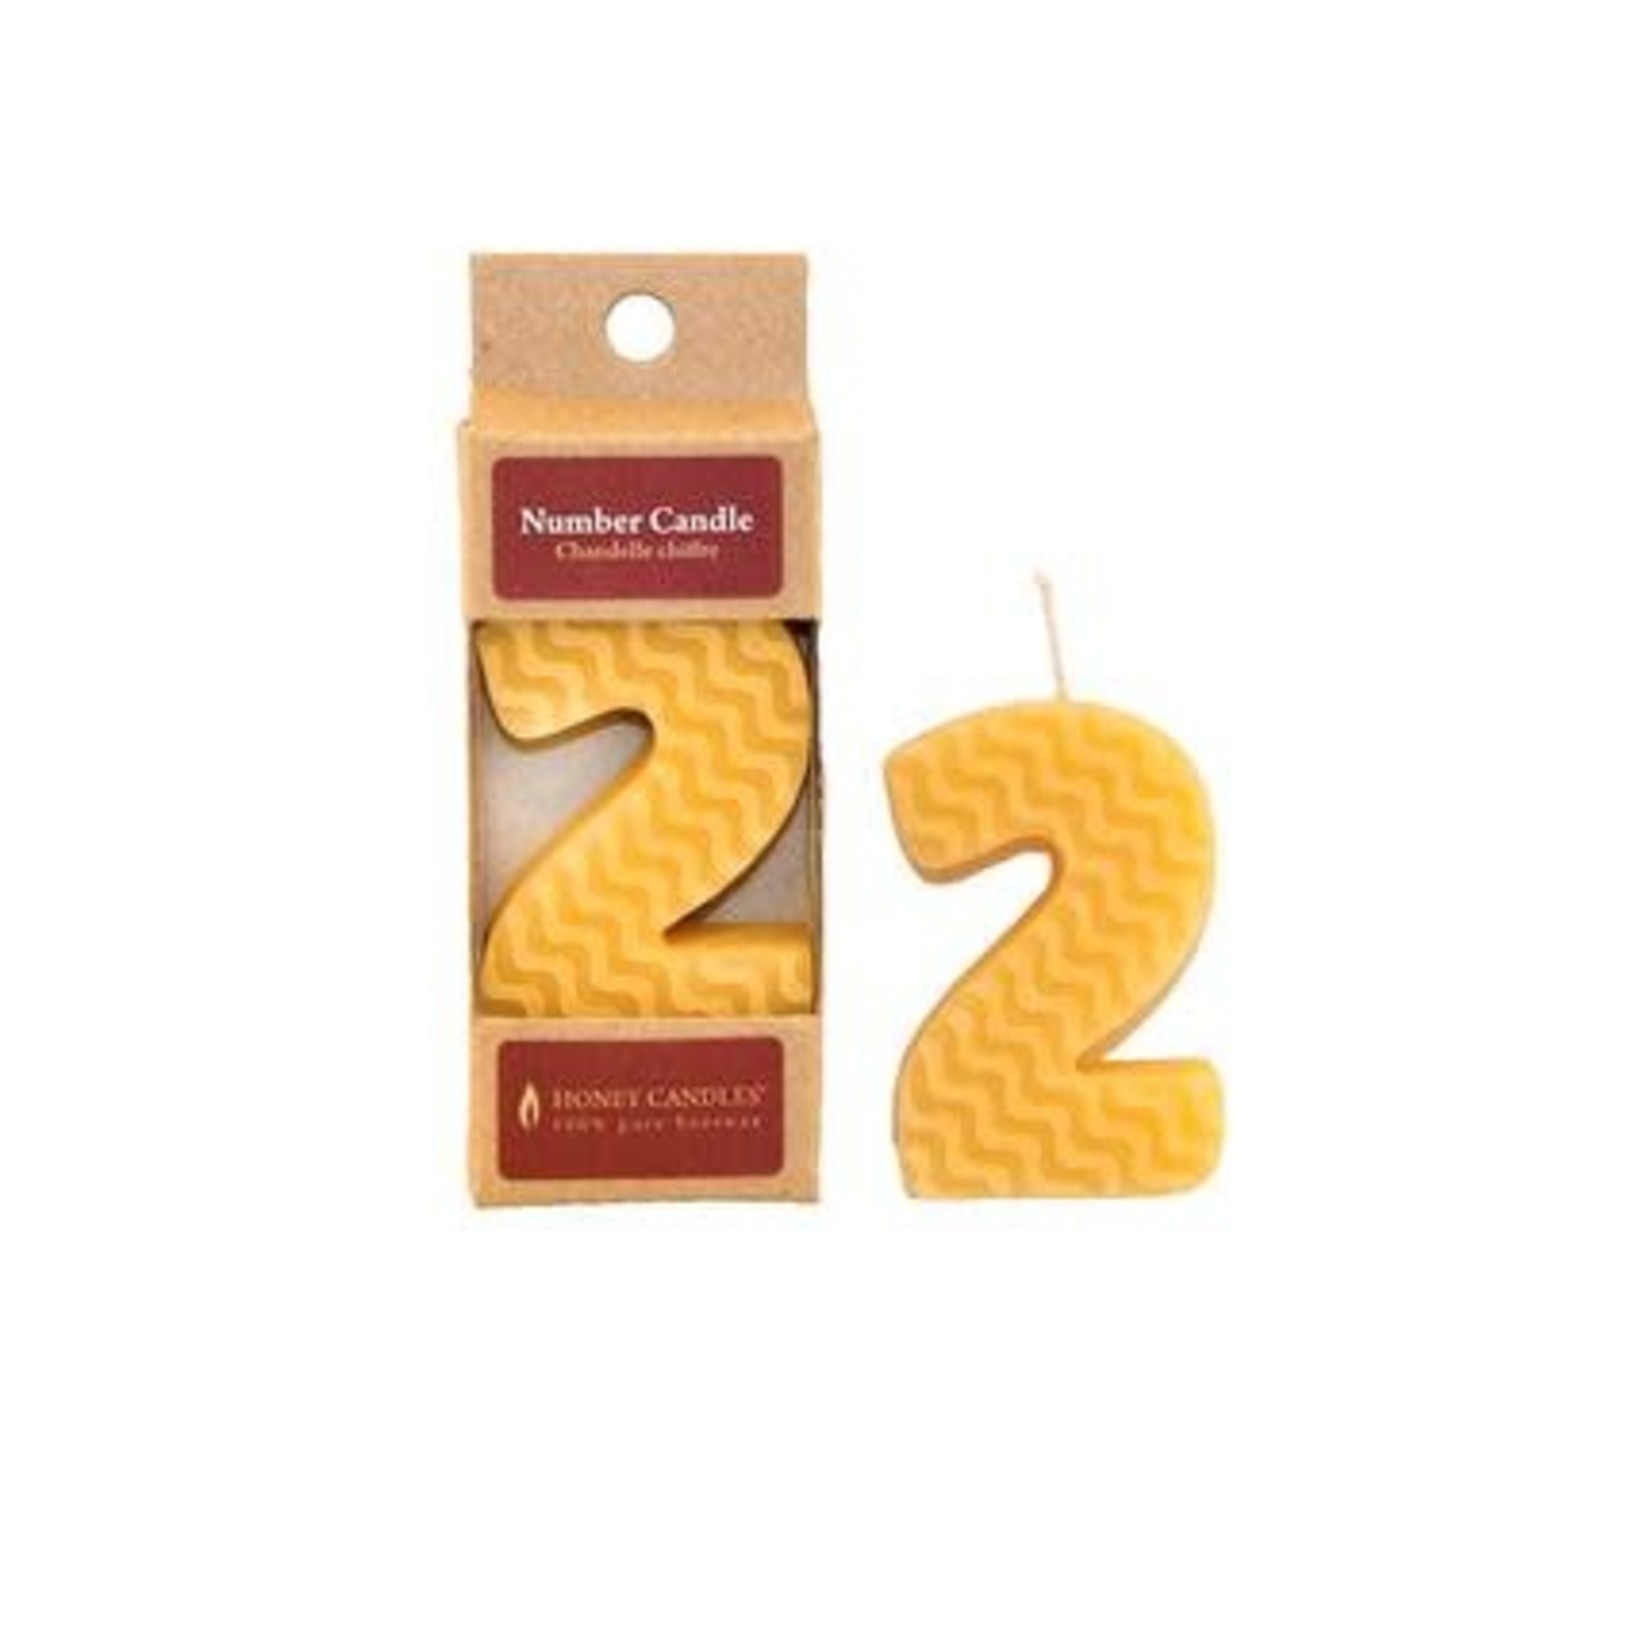 HONEY CANDLES NUMBER 2 BEESWAX CANDLE